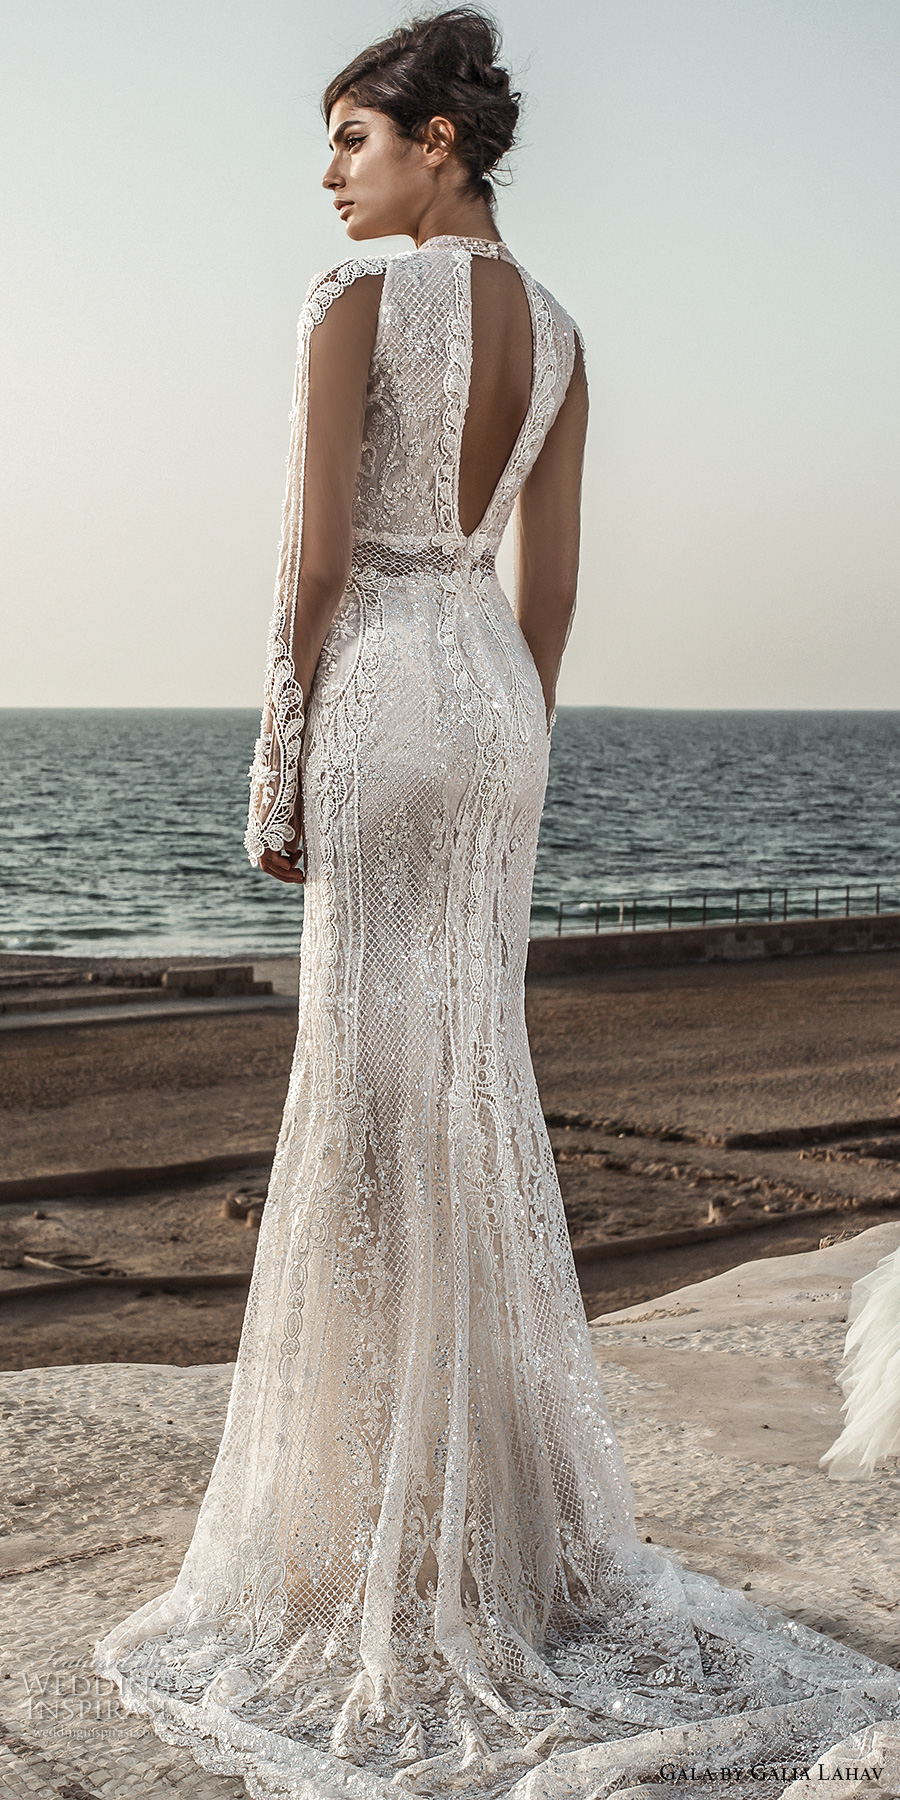 Gala by galia lahav 2017 wedding dresses bridal for Wedding dresses with sleeves 2017